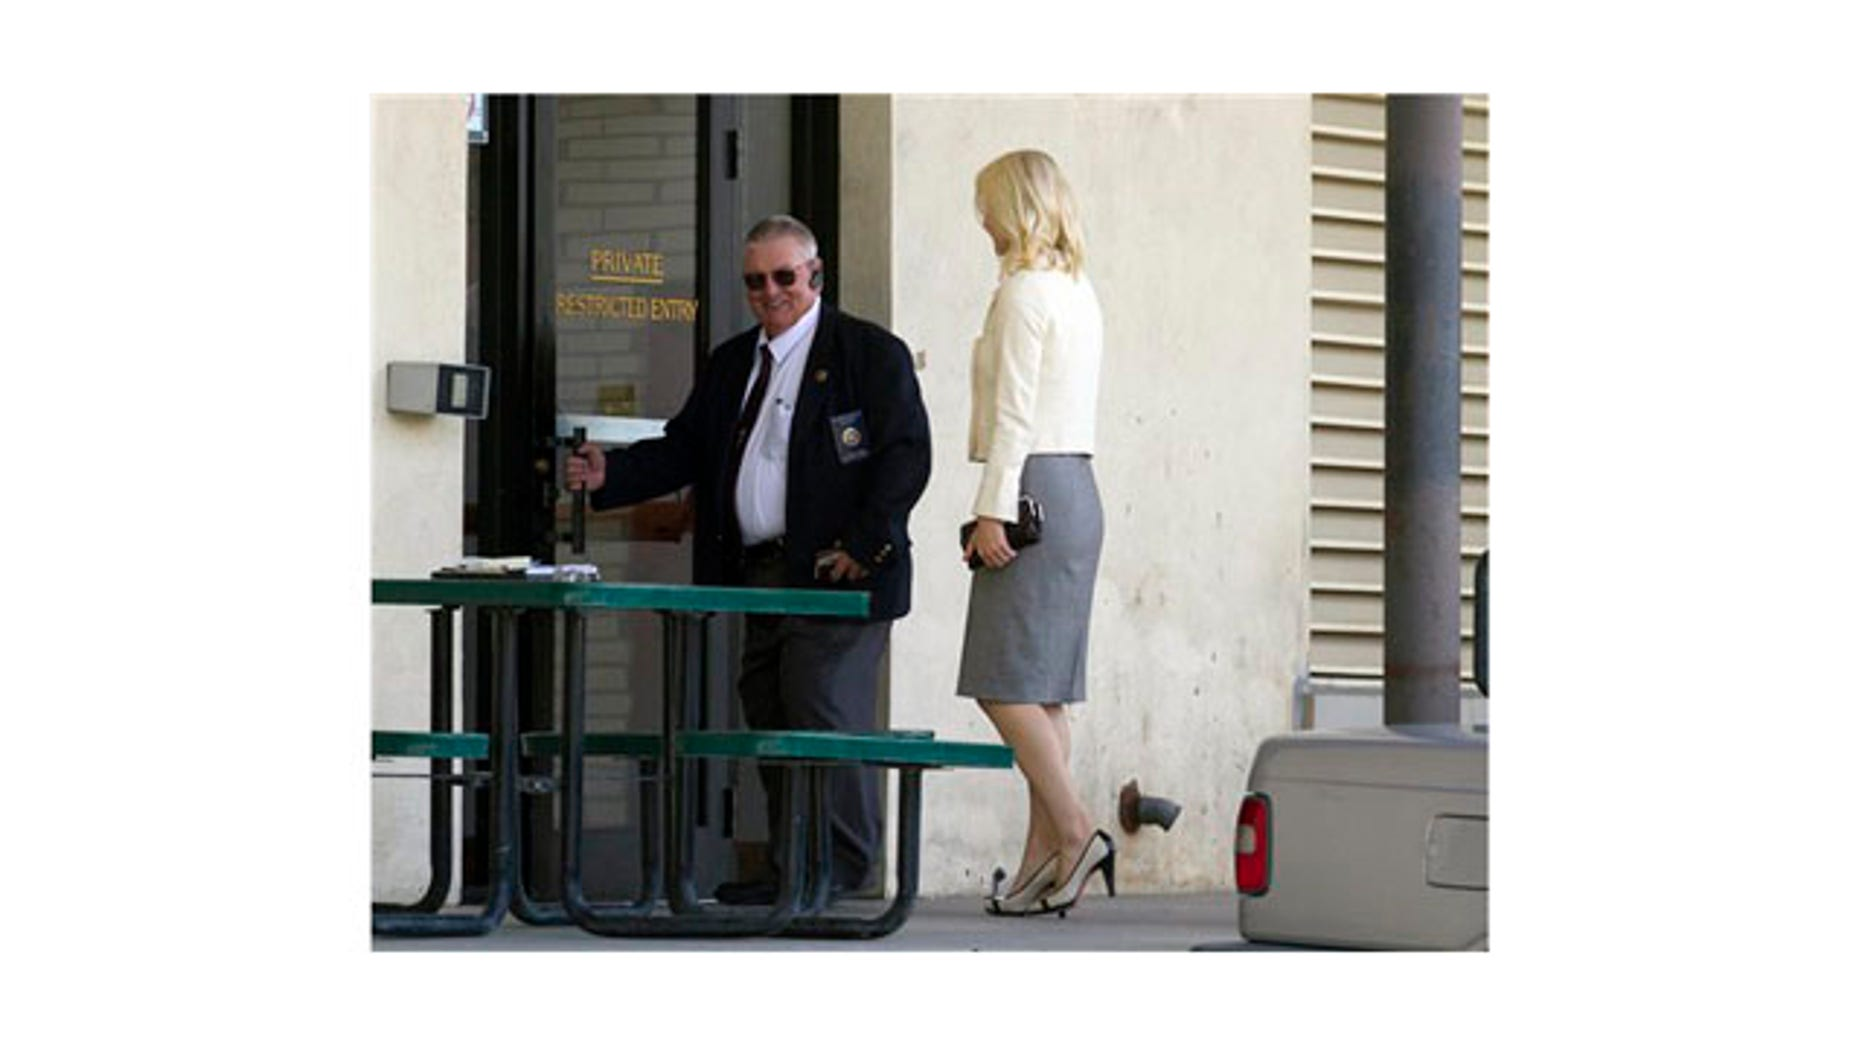 May 25: Elizabeth Smart walks into the Frank E. Moss Federal Courthouse in Salt Lake City.